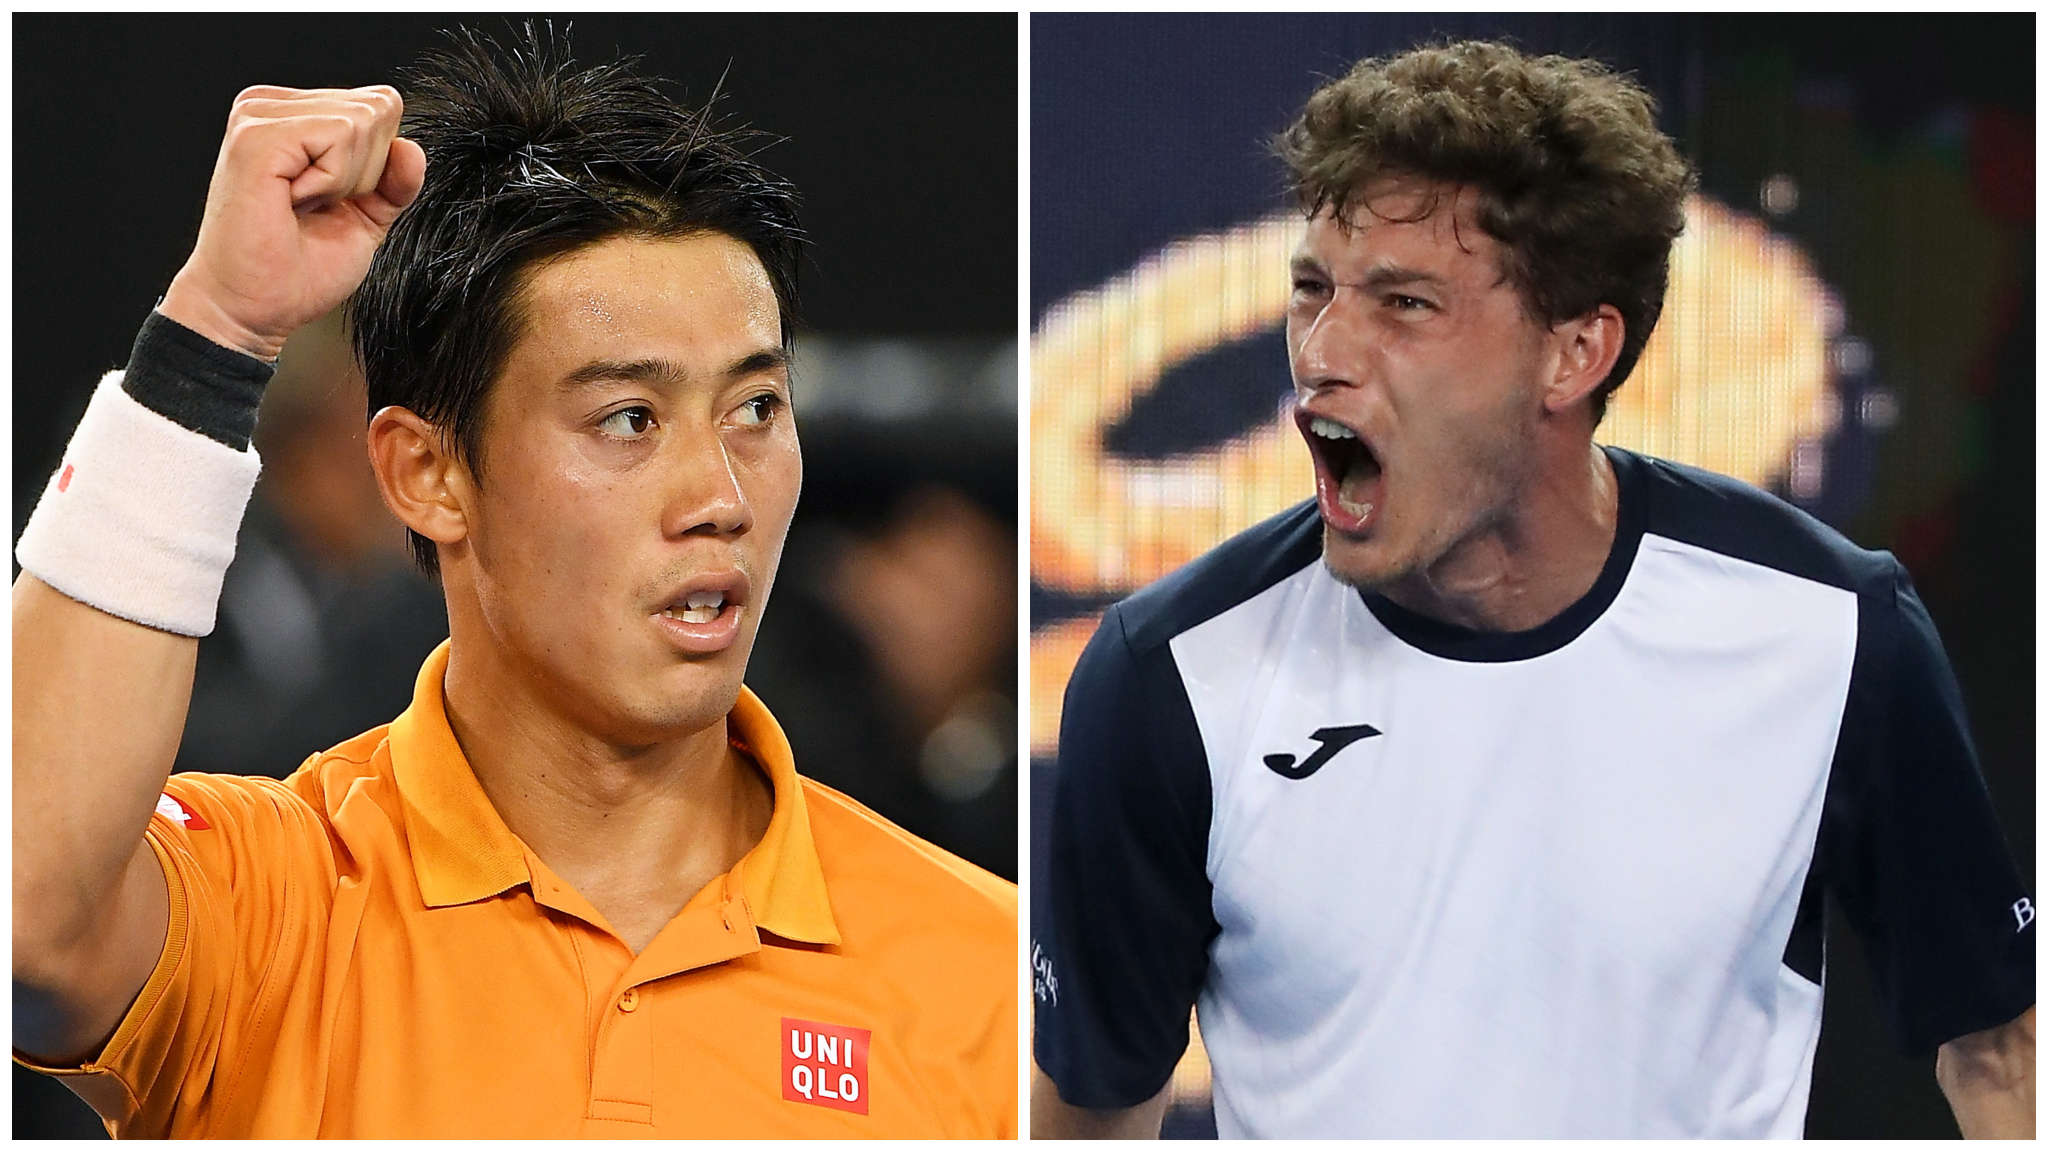 Nishikori through in five-set thriller as Carreno Busta apologises for on-court meltdown